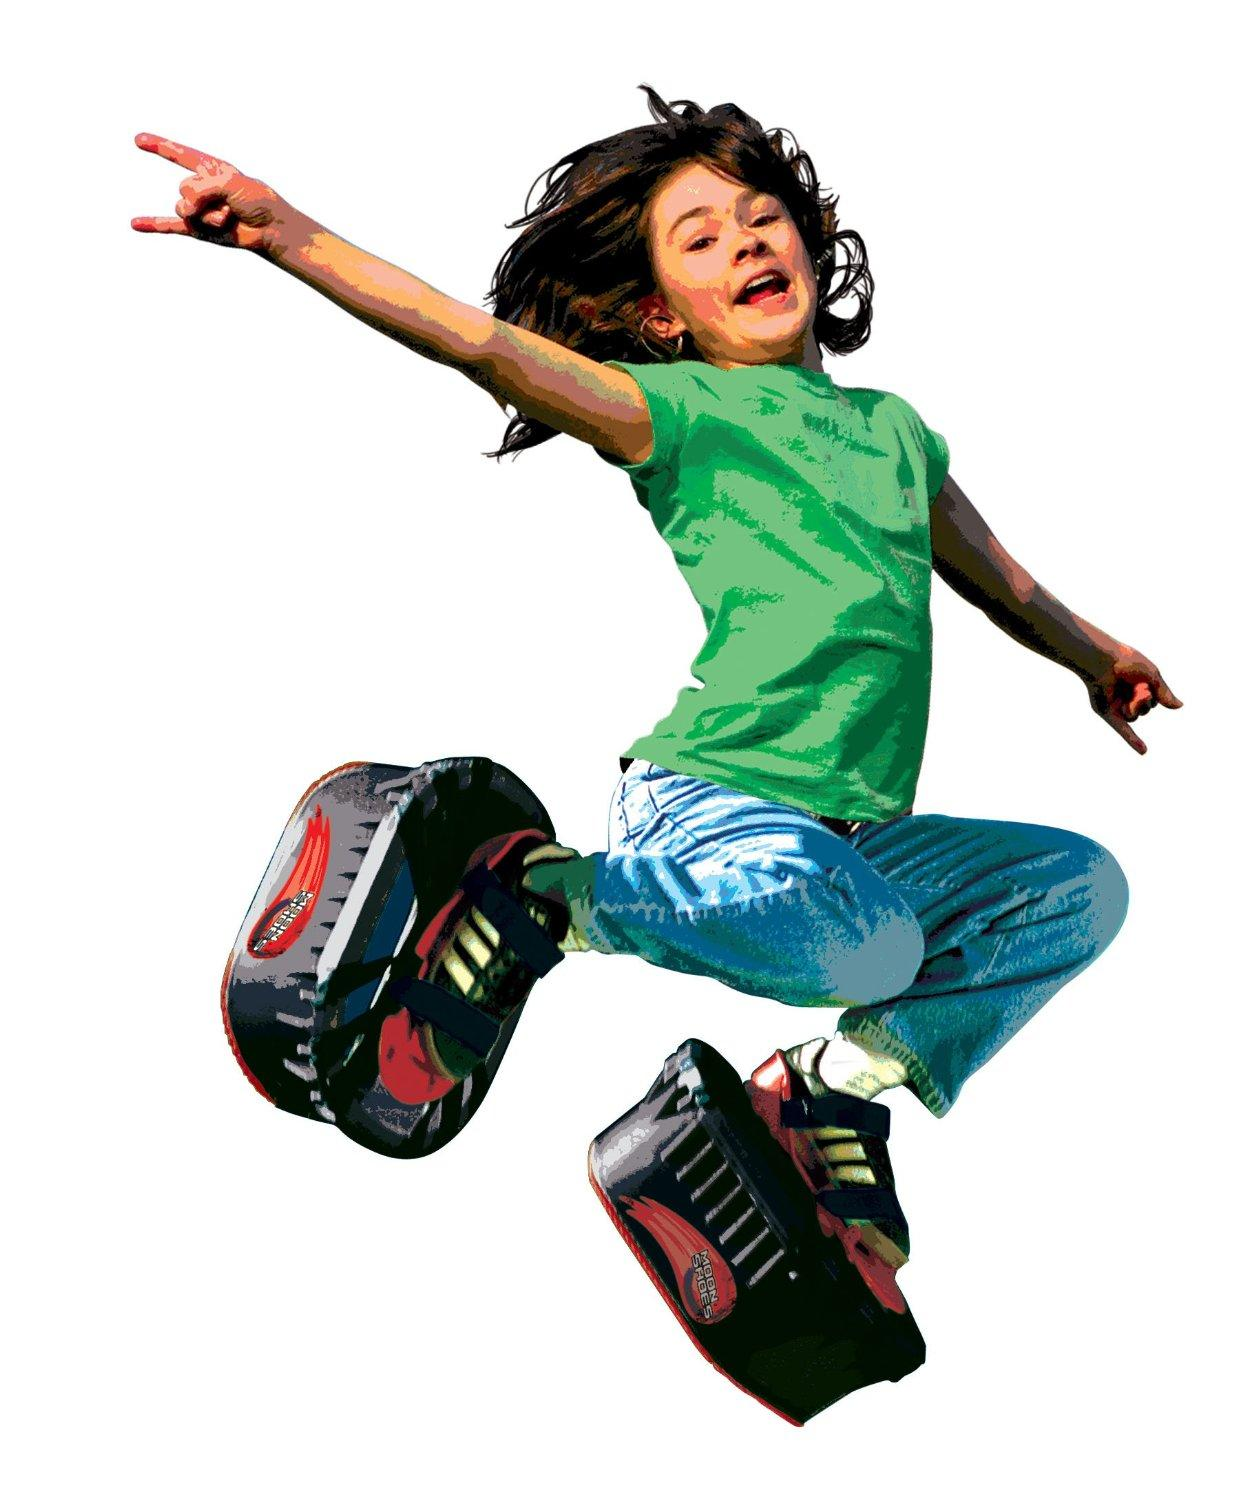 $19 Big Time Toys Moon Shoes